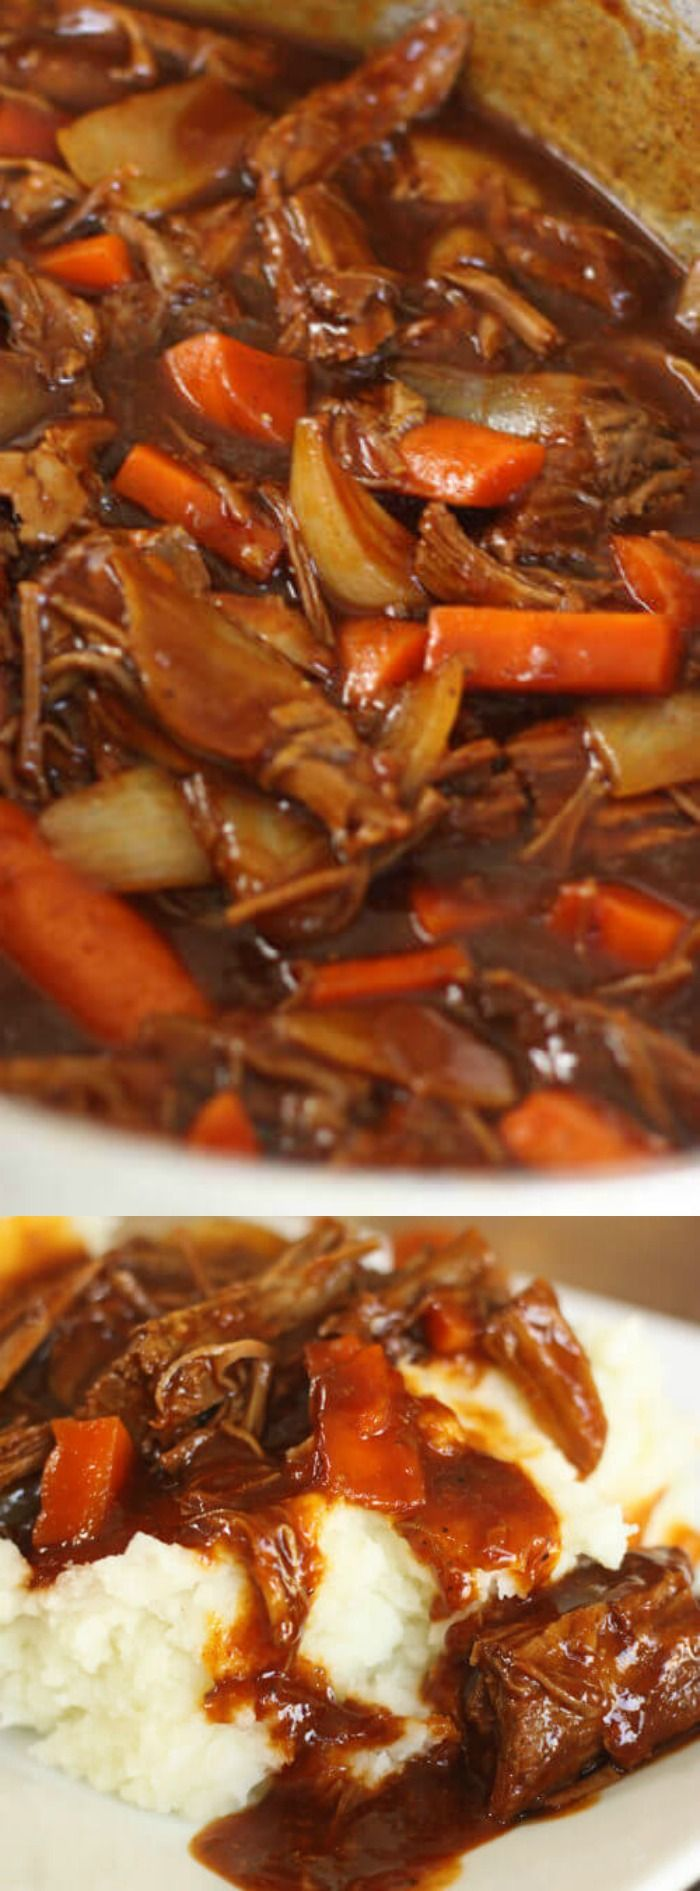 This rich, meaty and so very delicious Danish Goulash recipe from Favorite Family Recipes is sure to be a huge hit at your next Sunday dinner!